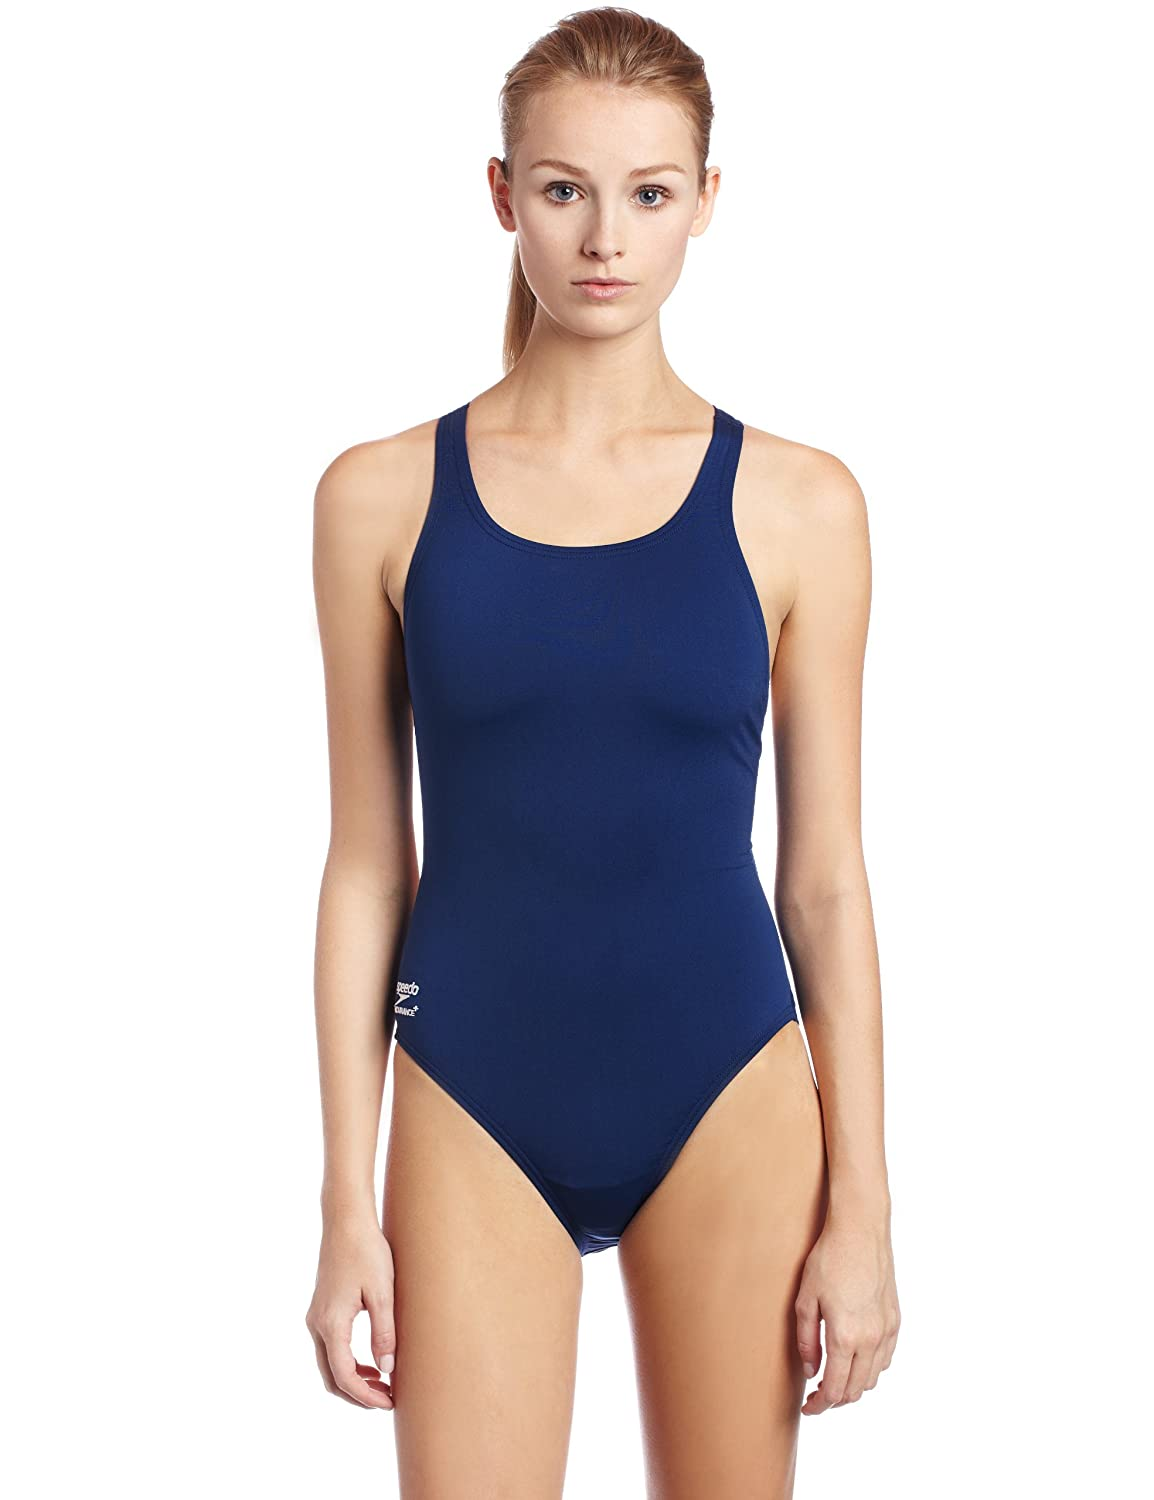 f89076a53d Amazon.com : Speedo Female One Piece Swimsuit - Endurance+ Solid Super Pro  : Athletic One Piece Swimsuits : Clothing